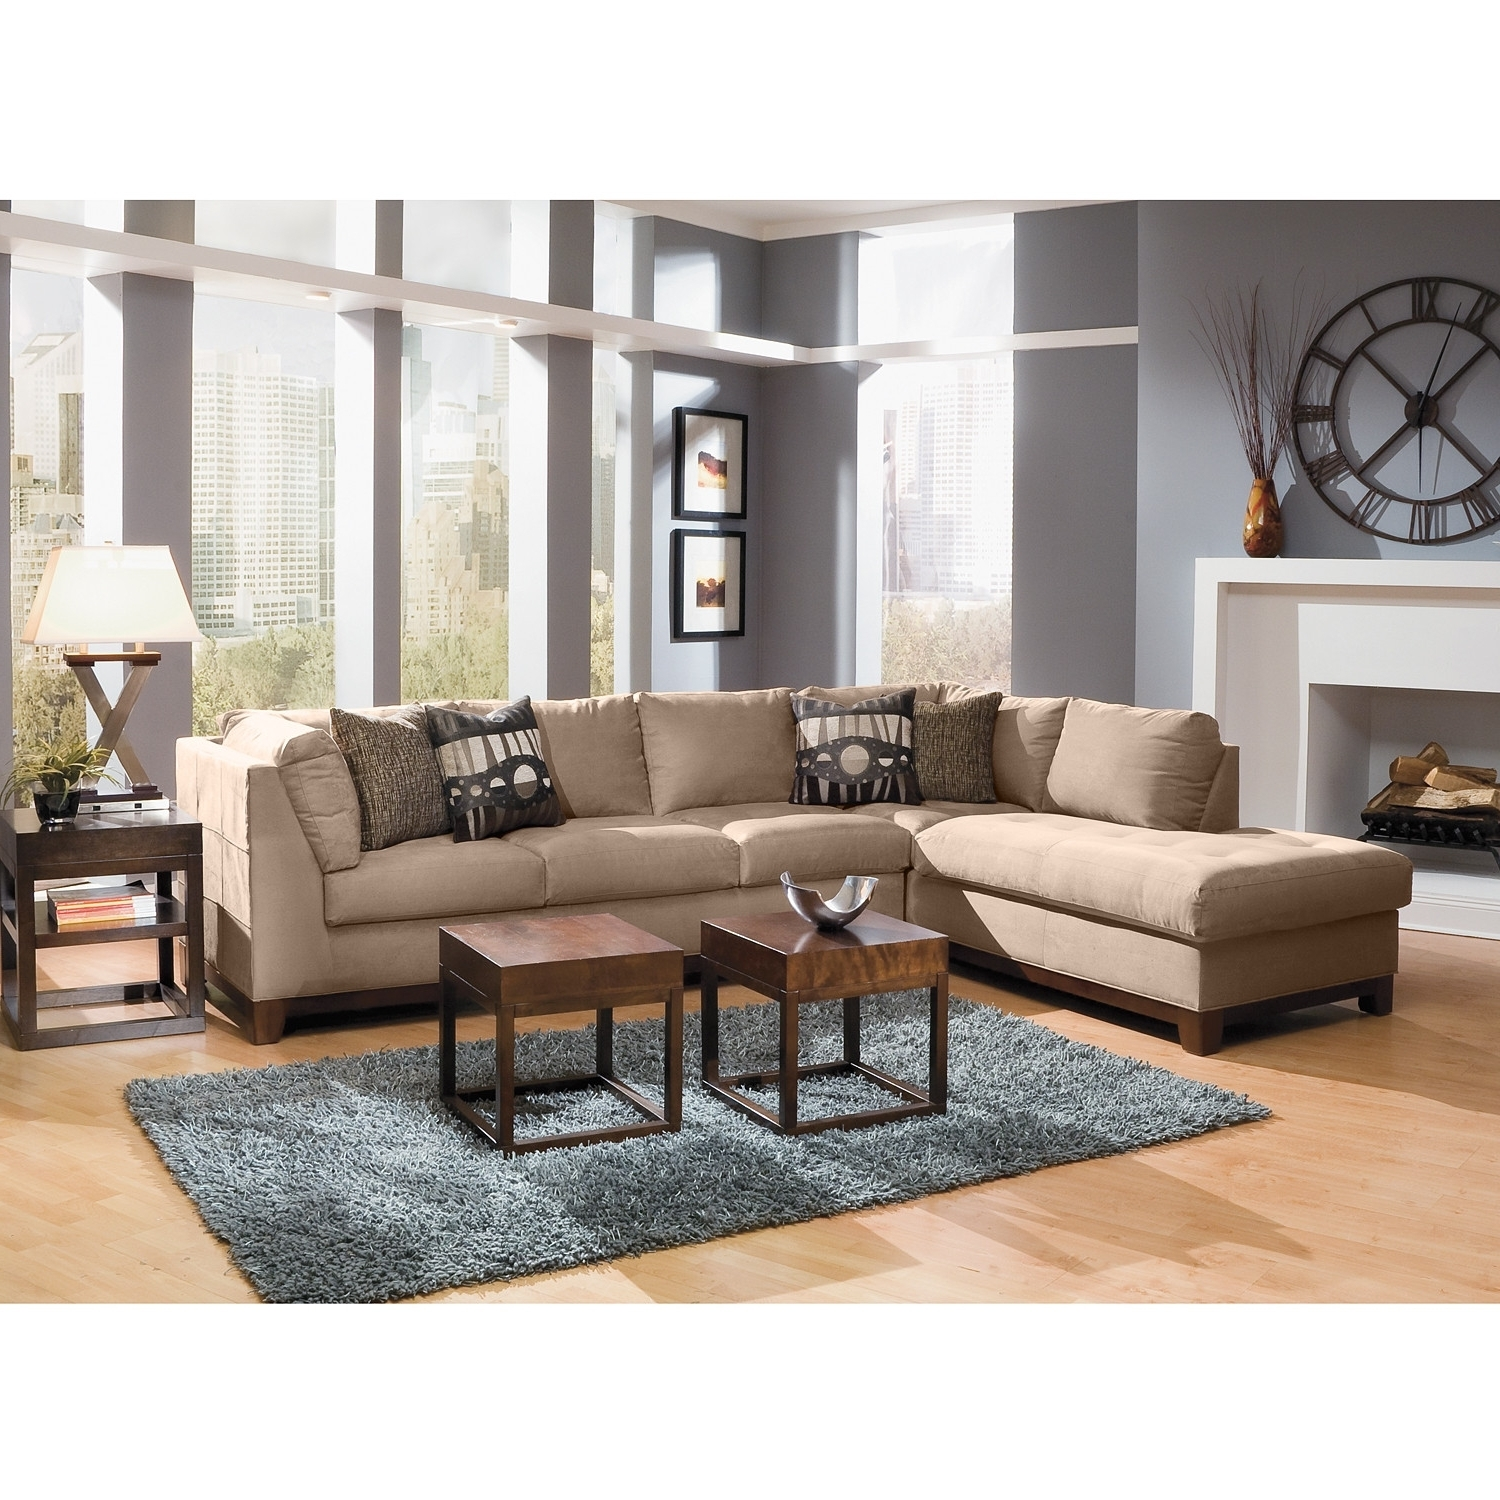 20 collection of sectional sofas in greensboro nc